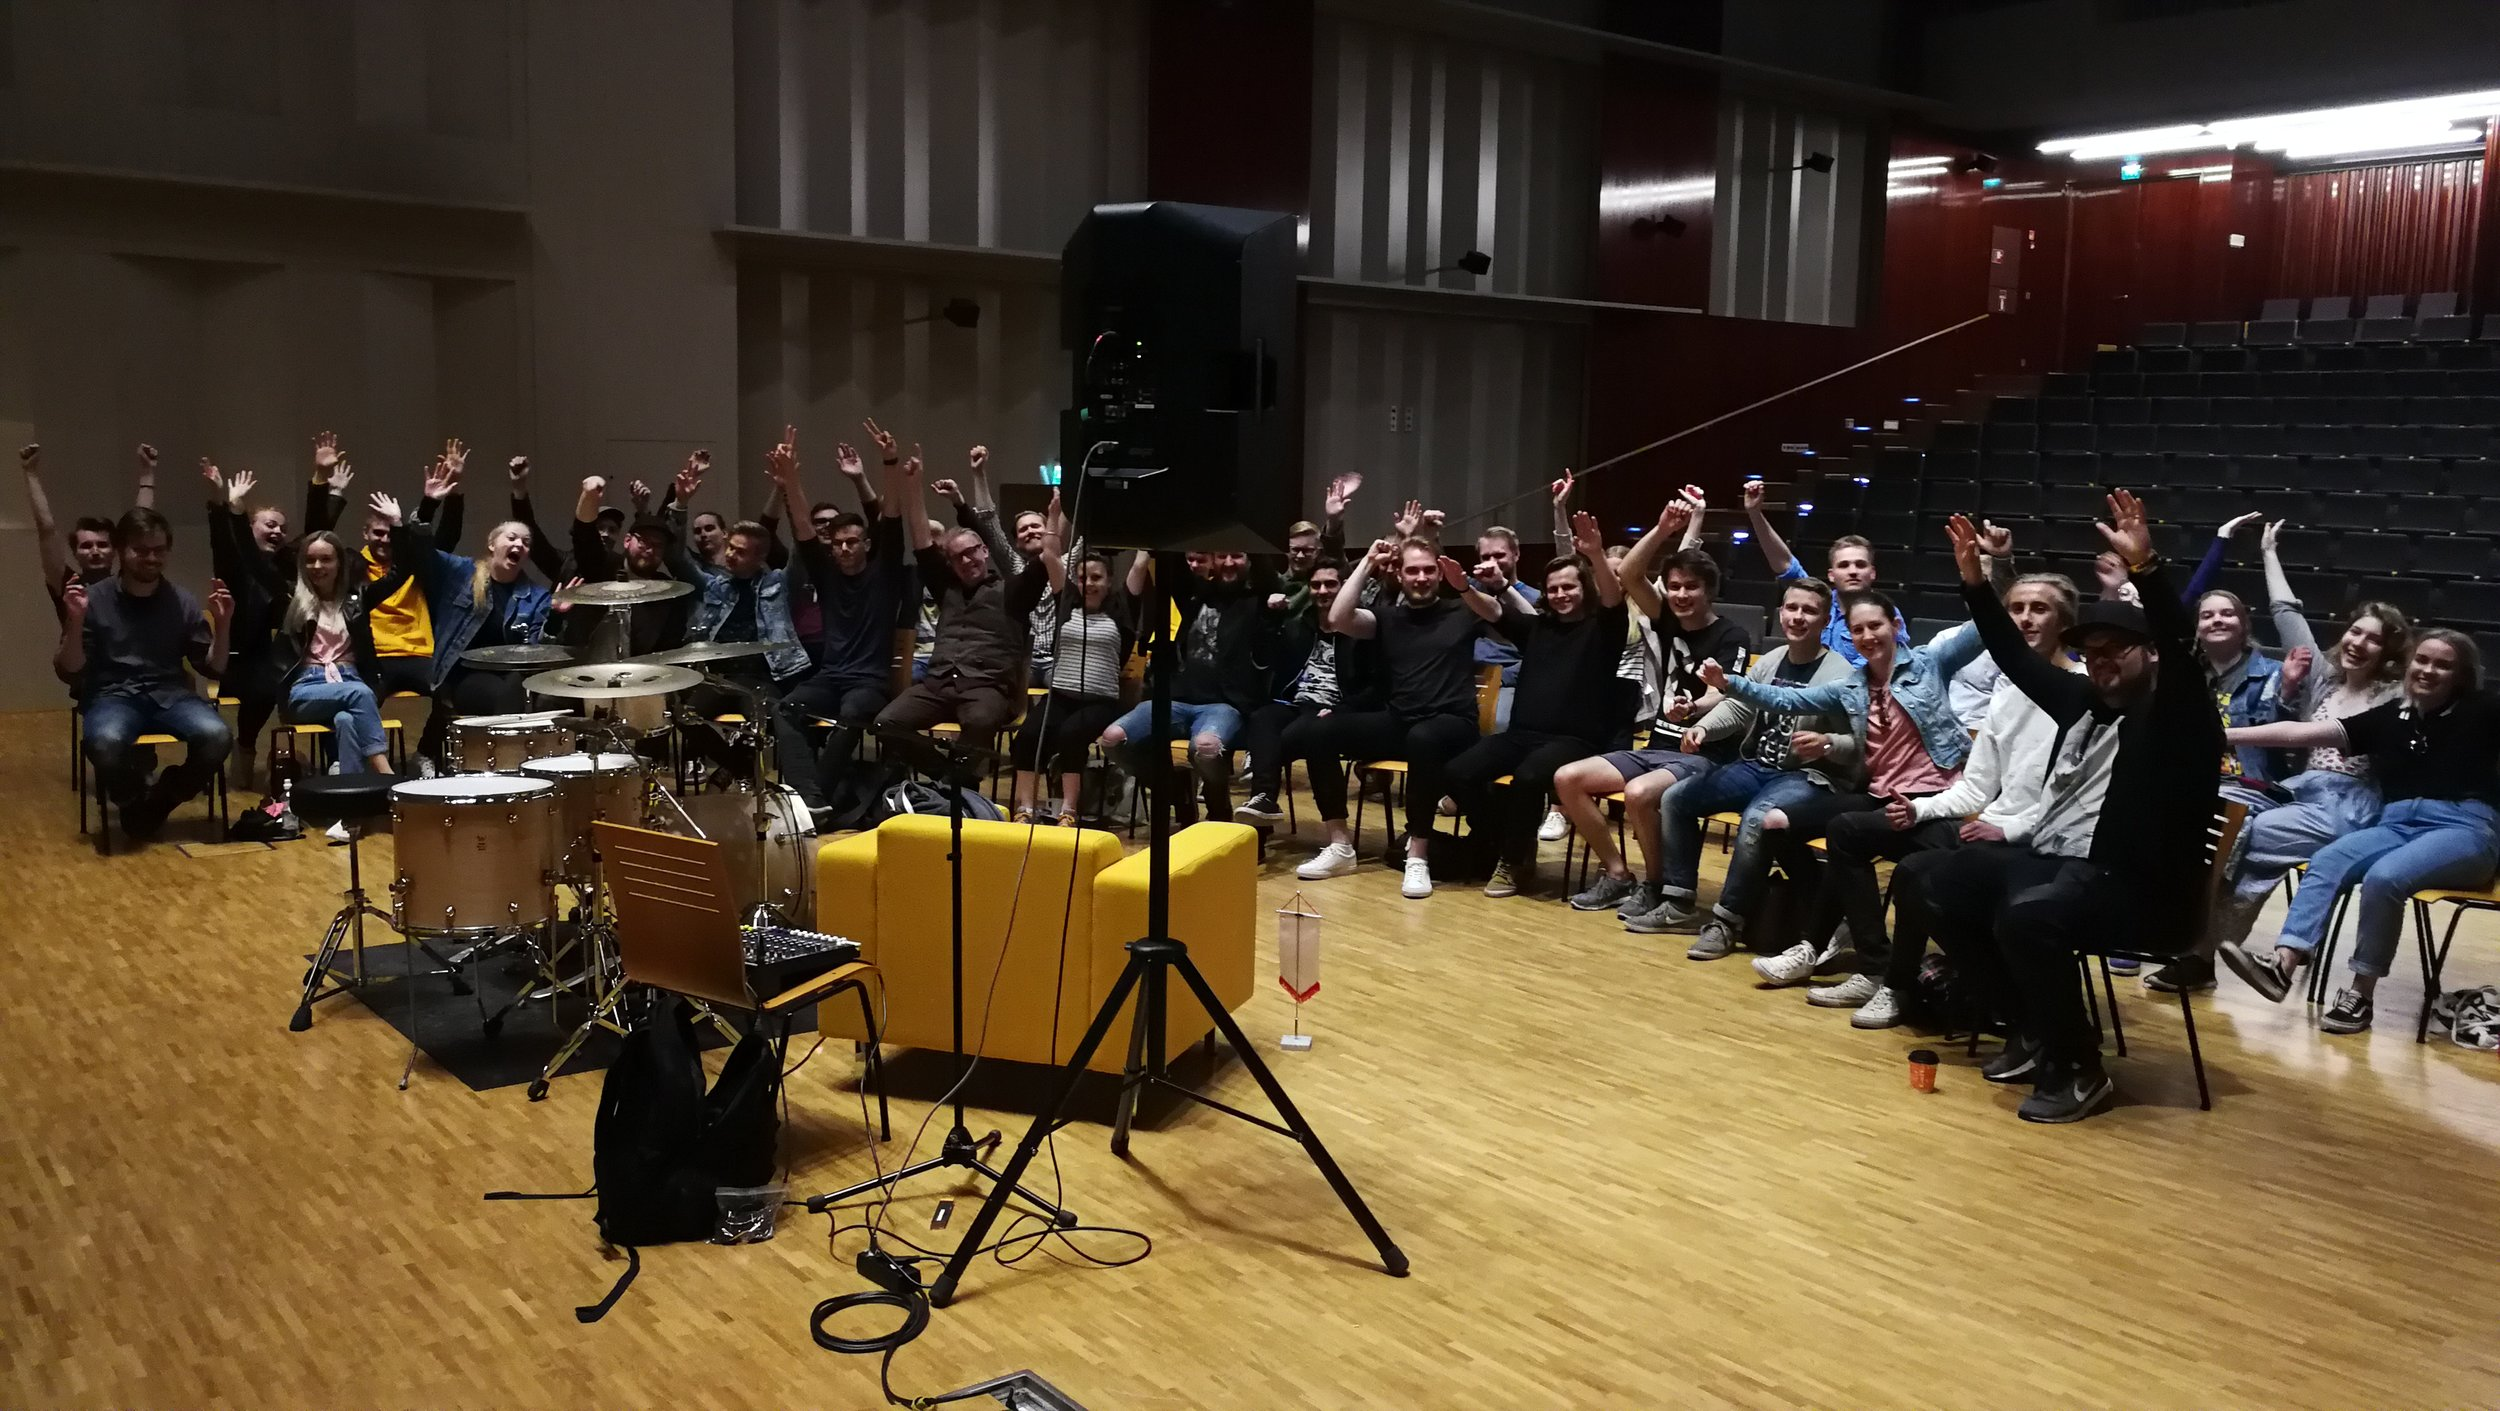 Social Media & Music Career seminar in Jakobstad, Finland, 2018.